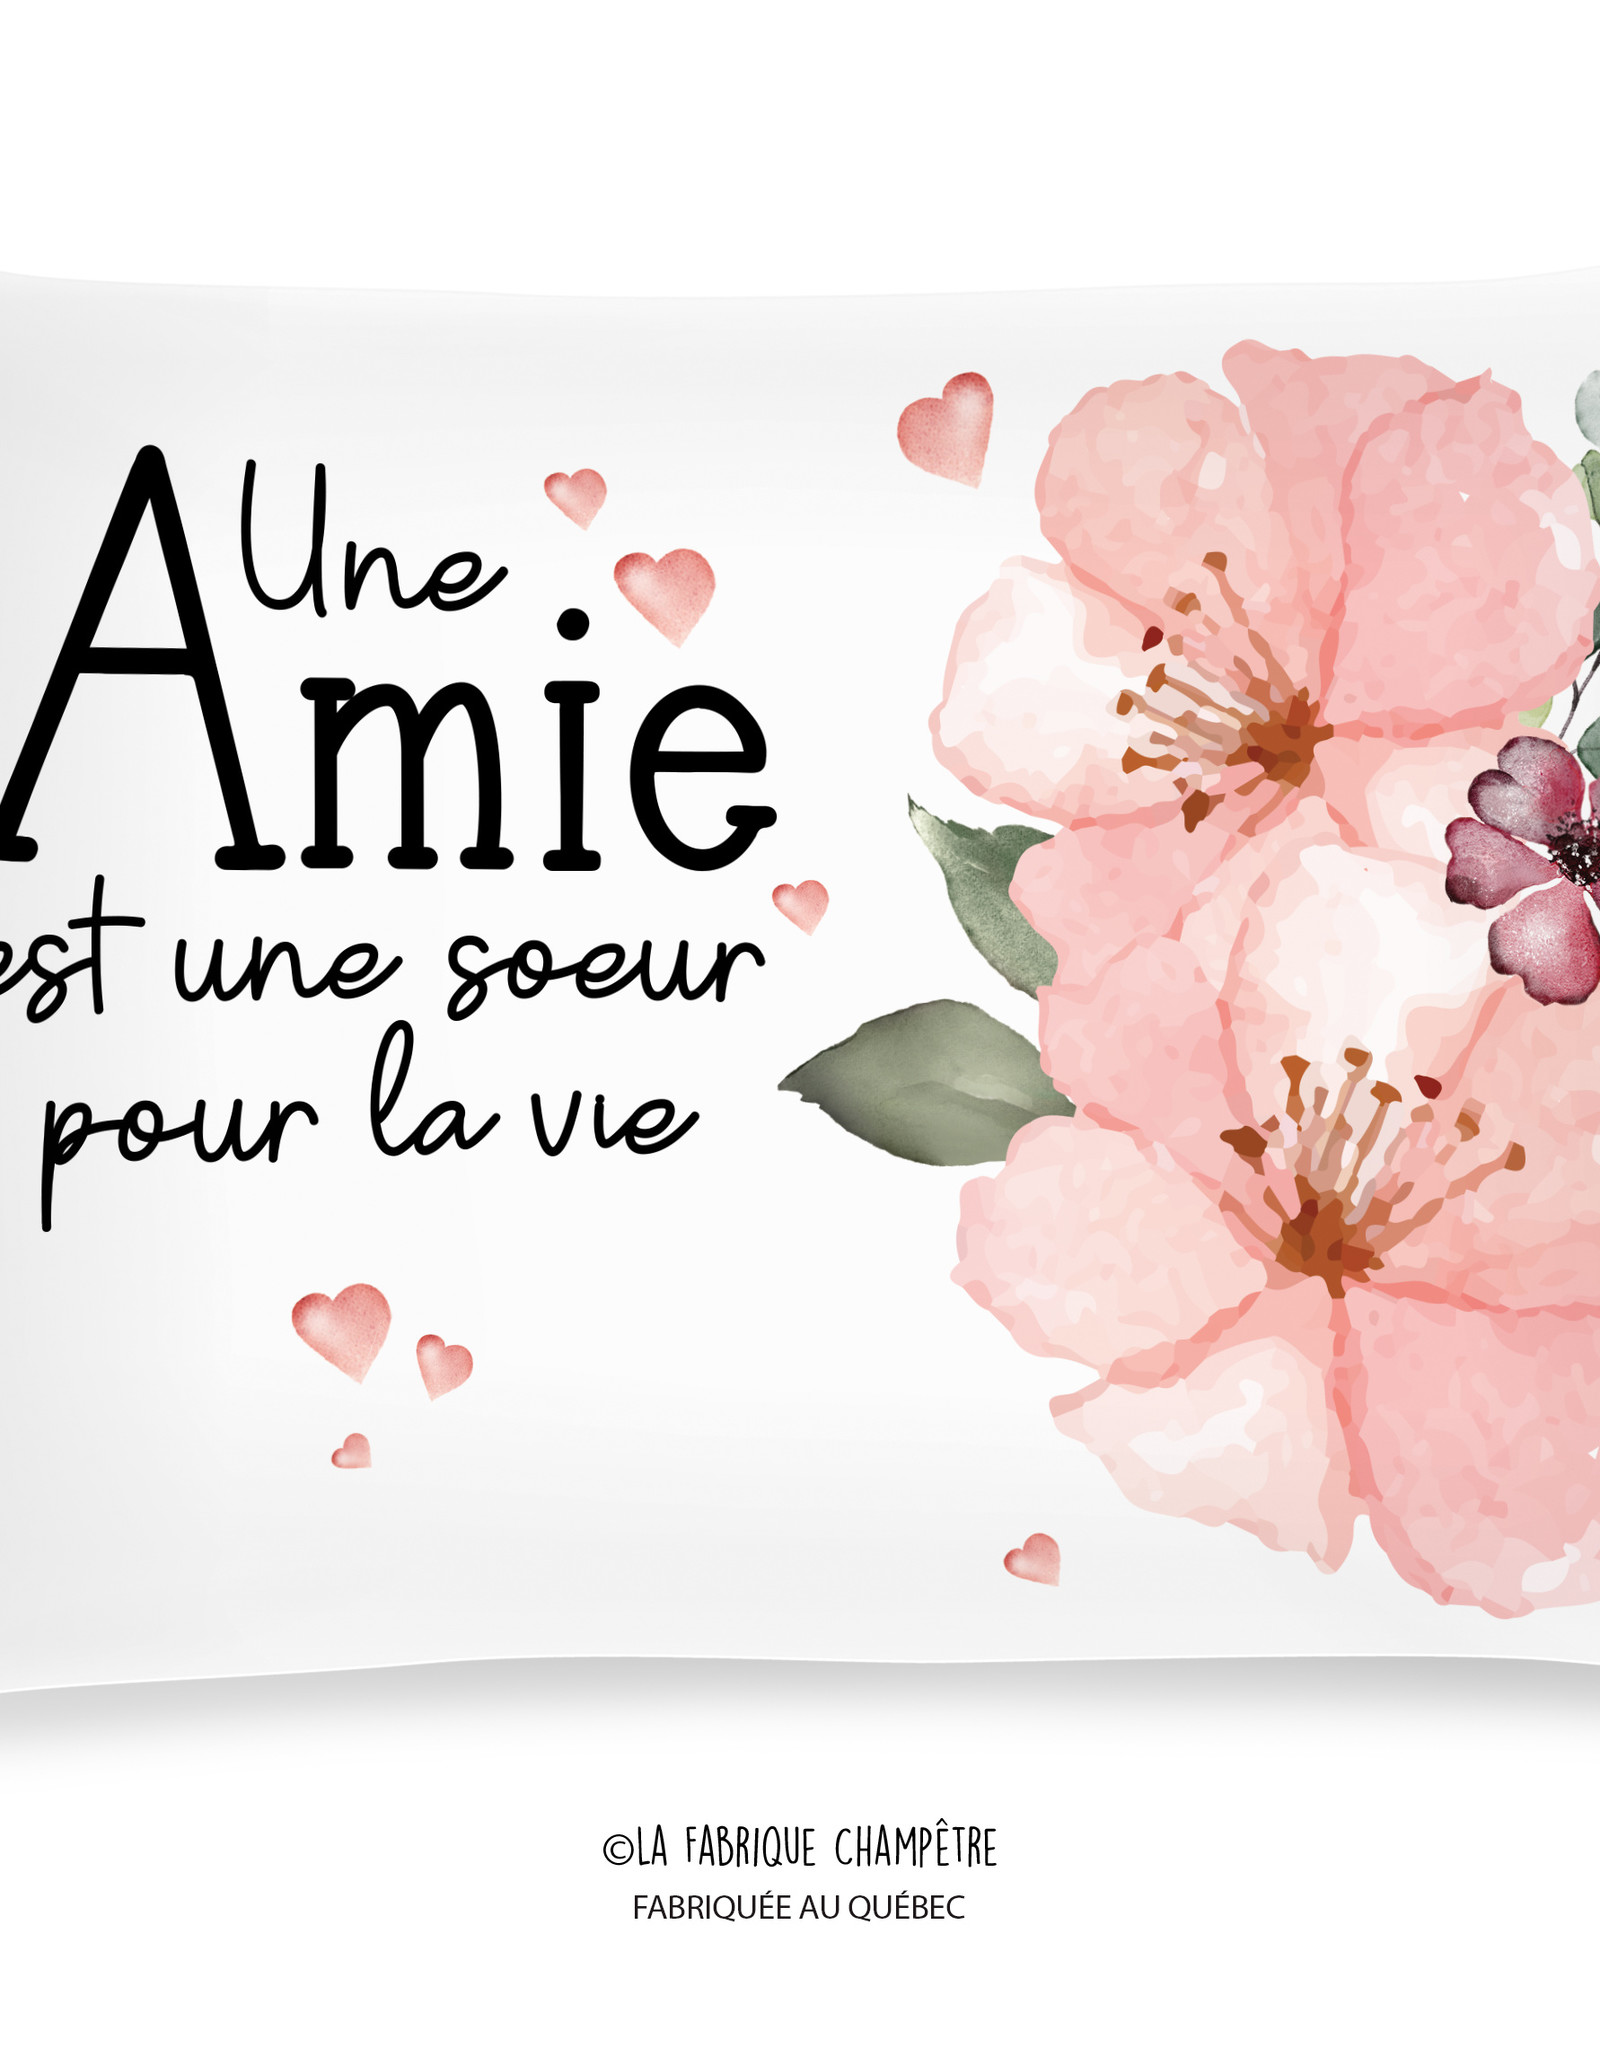 Coussin amie